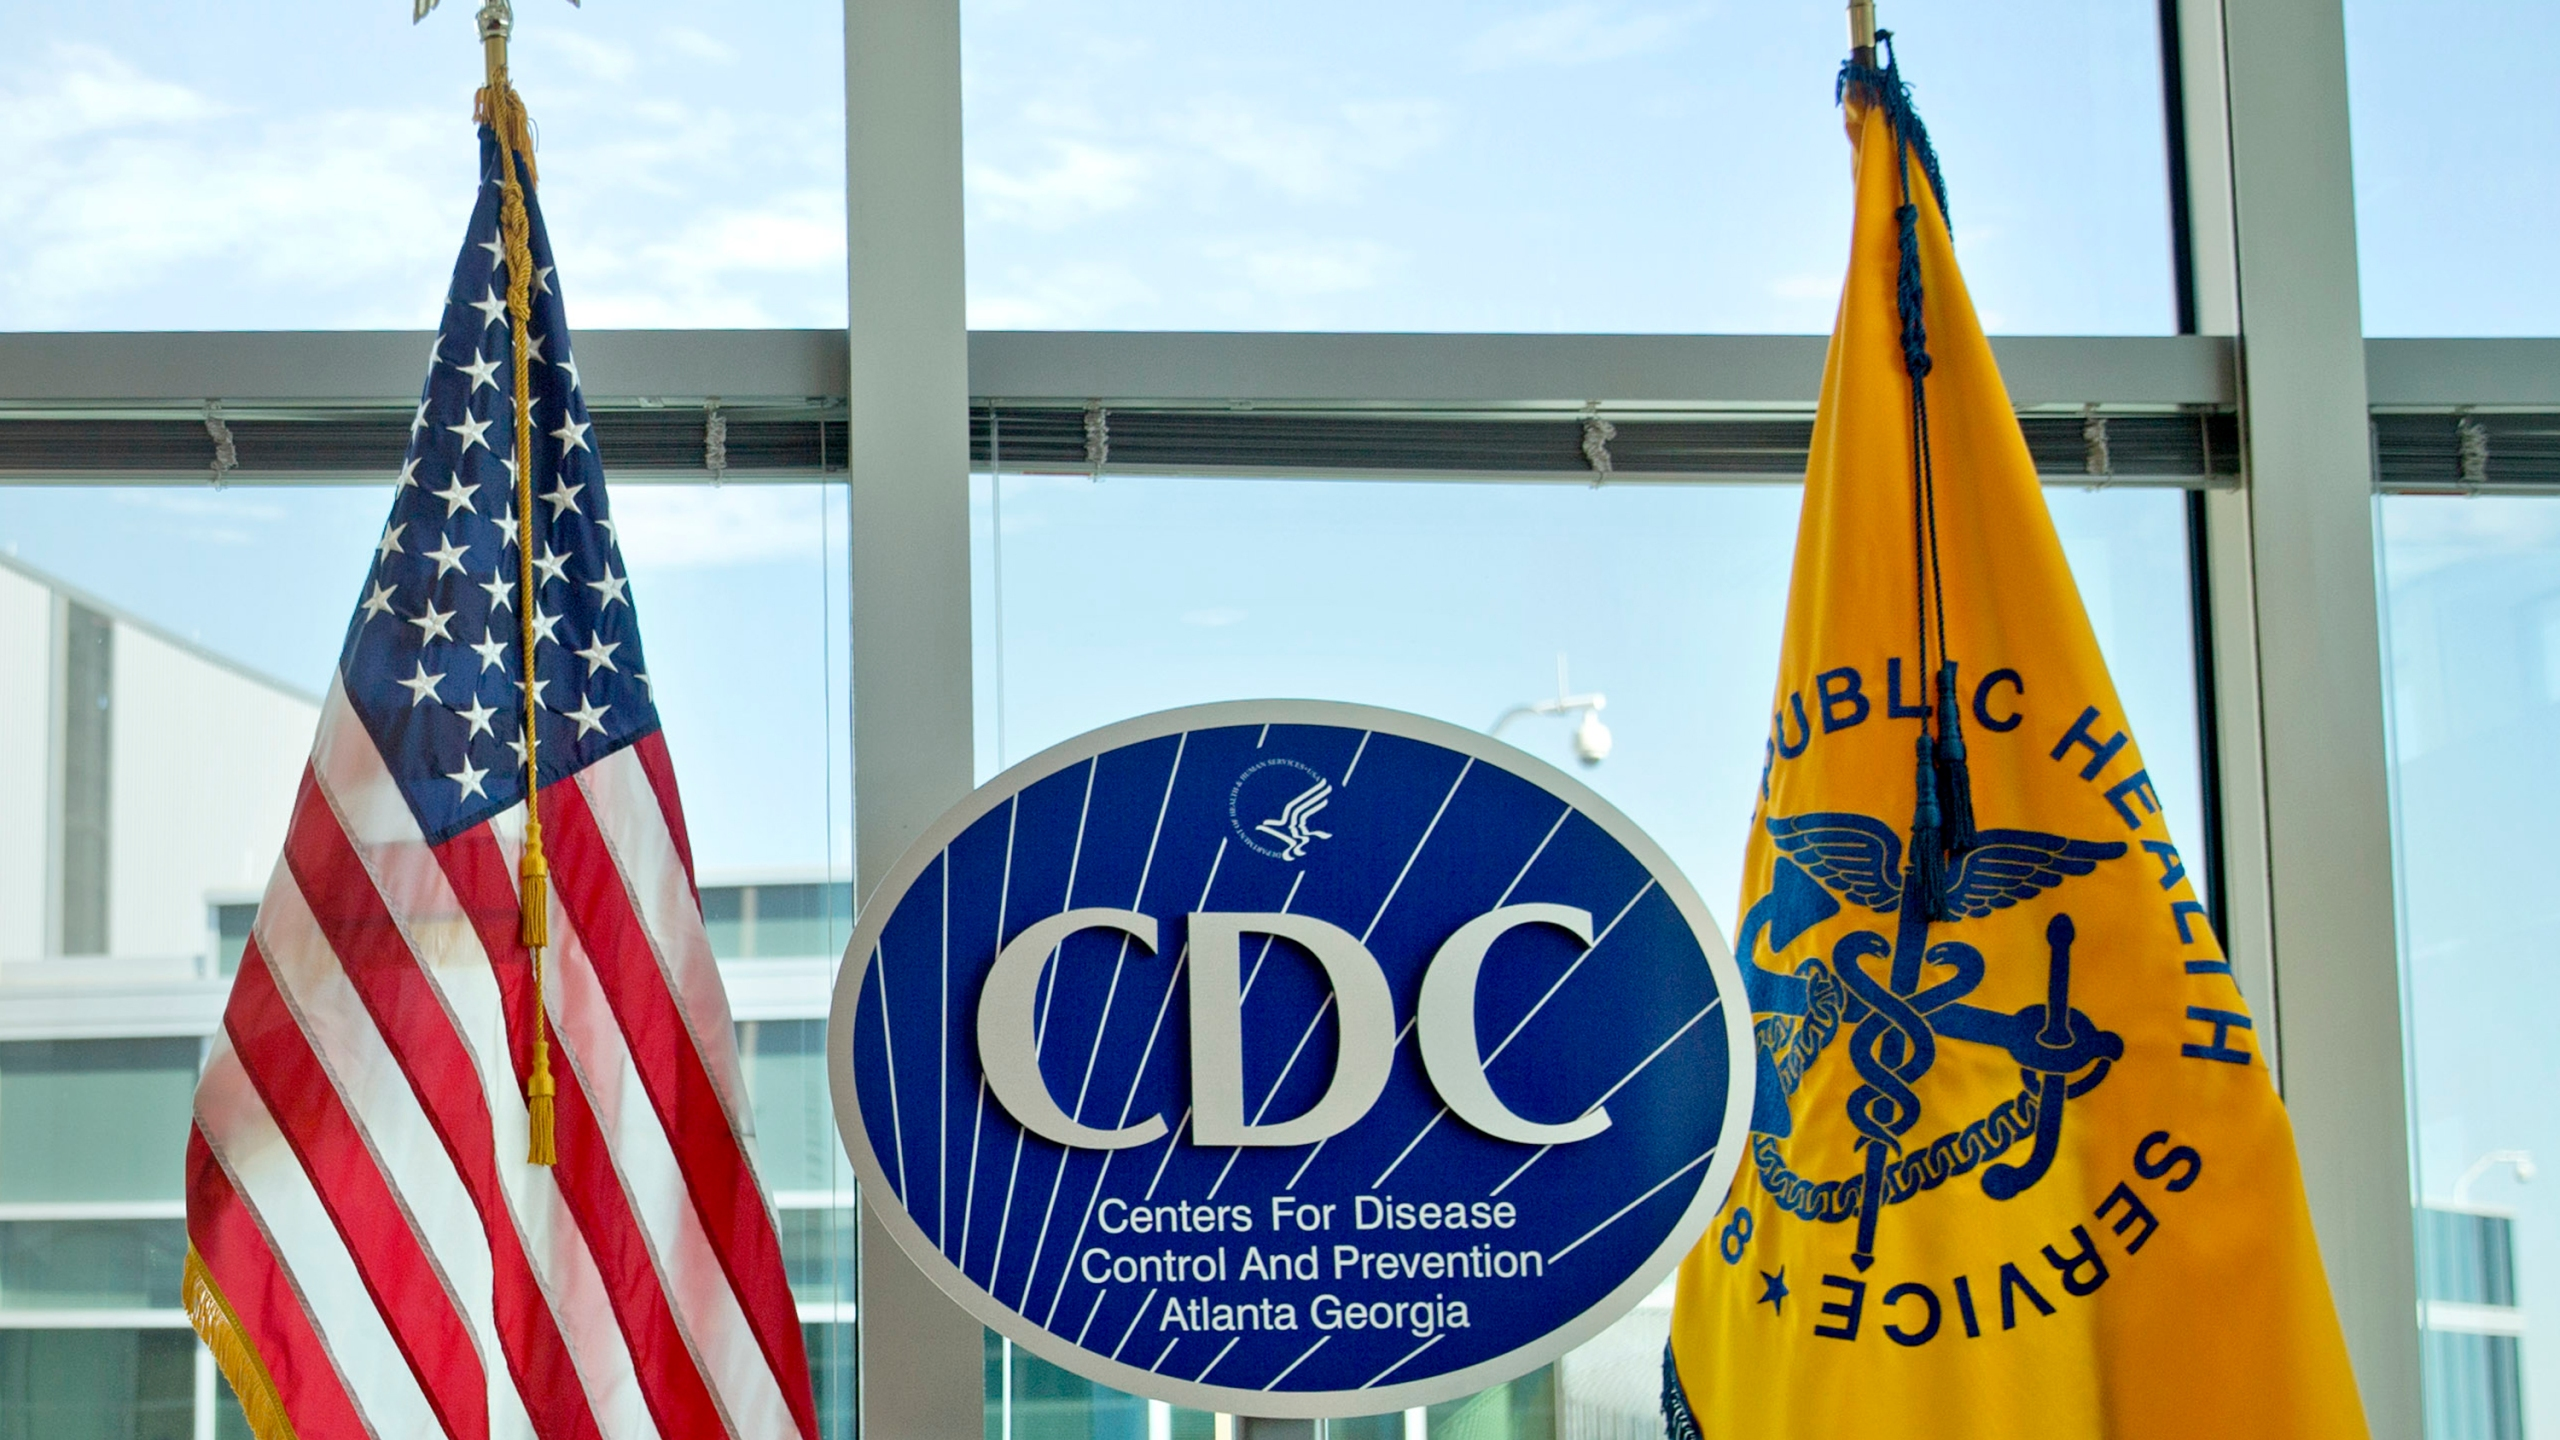 This Nov. 19, 2013 file photo shows a Centers for Disease Control and Prevention logo at the agency's federal headquarters in Atlanta. In a growing medical mystery, a person who died in July 2021 in Georgia has been confirmed as the fourth U.S. case this year of an illness caused by the meliodosis bacteria from South Asia. On Monday, Aug. 9, 2021, the Centers for Disease Control and Prevention sent an alert about the latest case to U.S. doctors. (AP Photo/David Goldman, File)